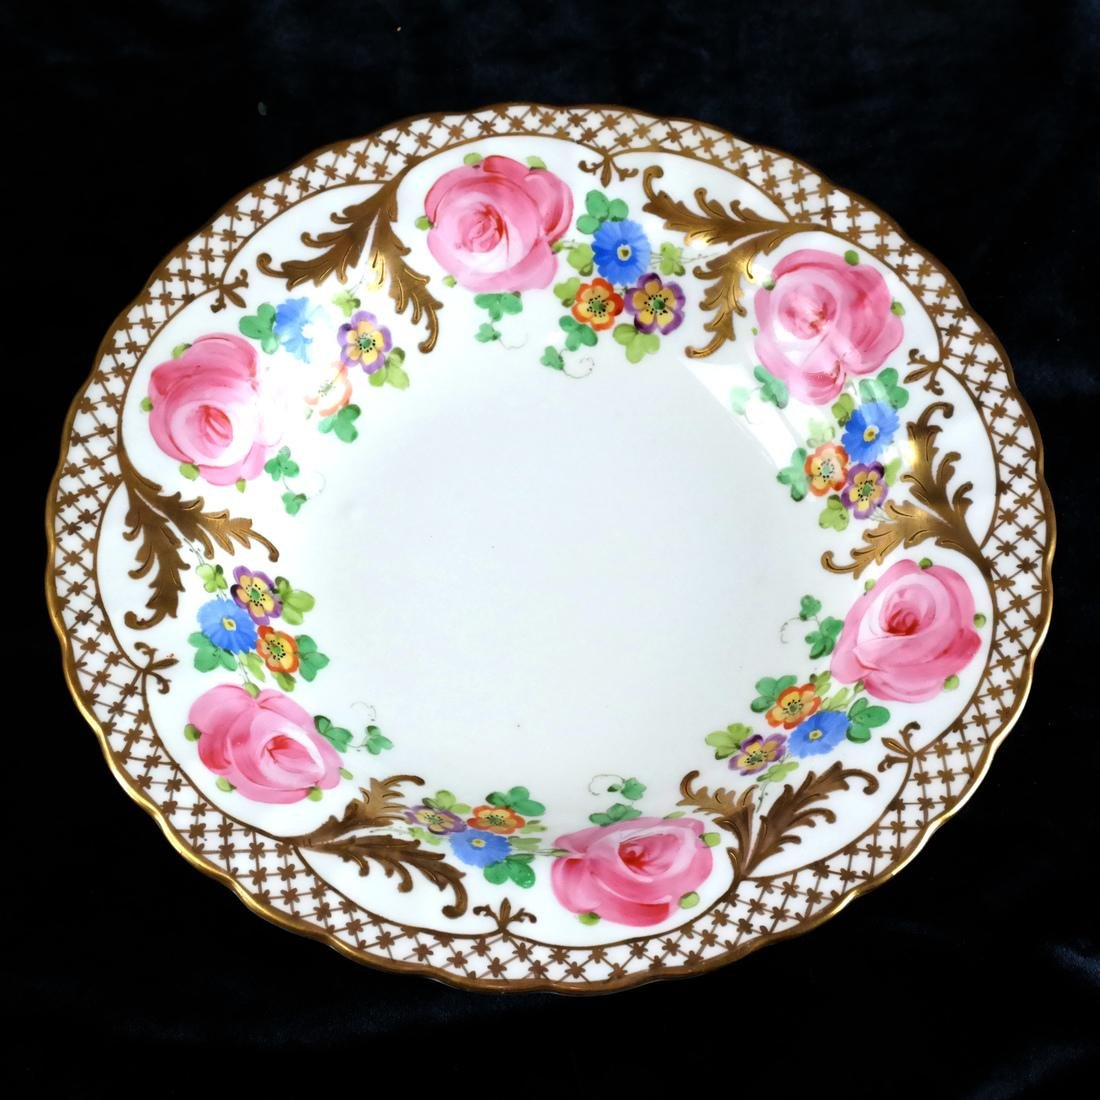 8 Crown, England Floral Decorated Bowls - 3